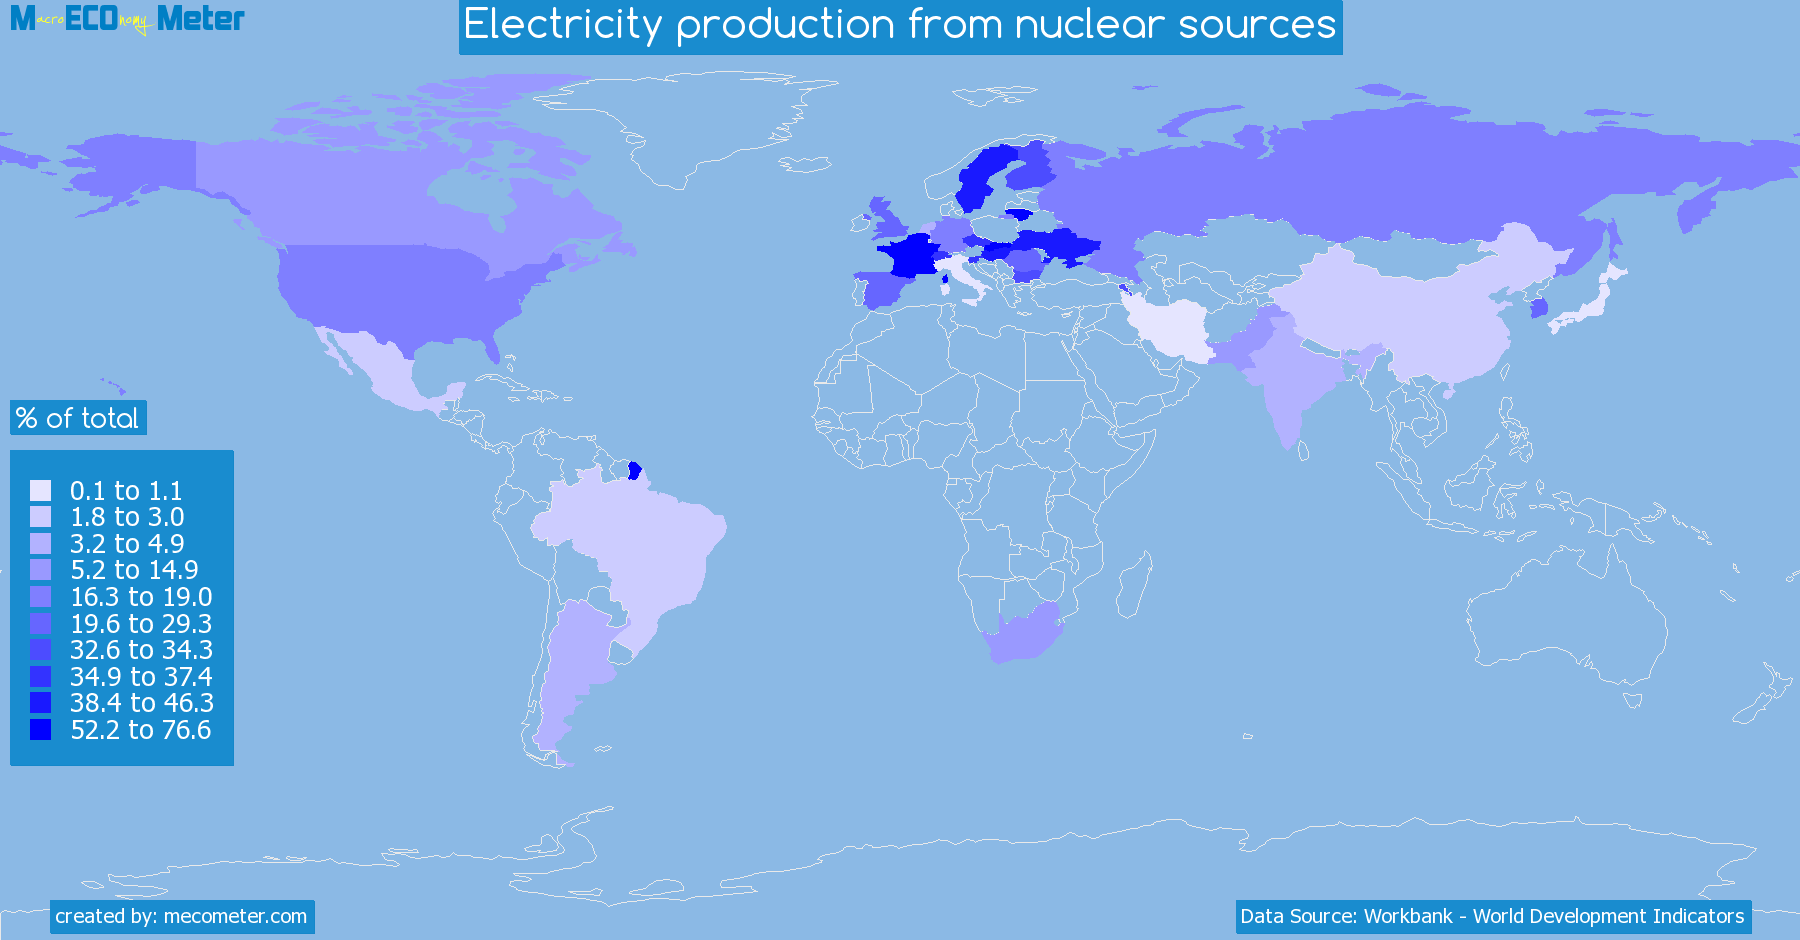 Worldmap of all countries colored to reflect the values of Electricity production from nuclear sources